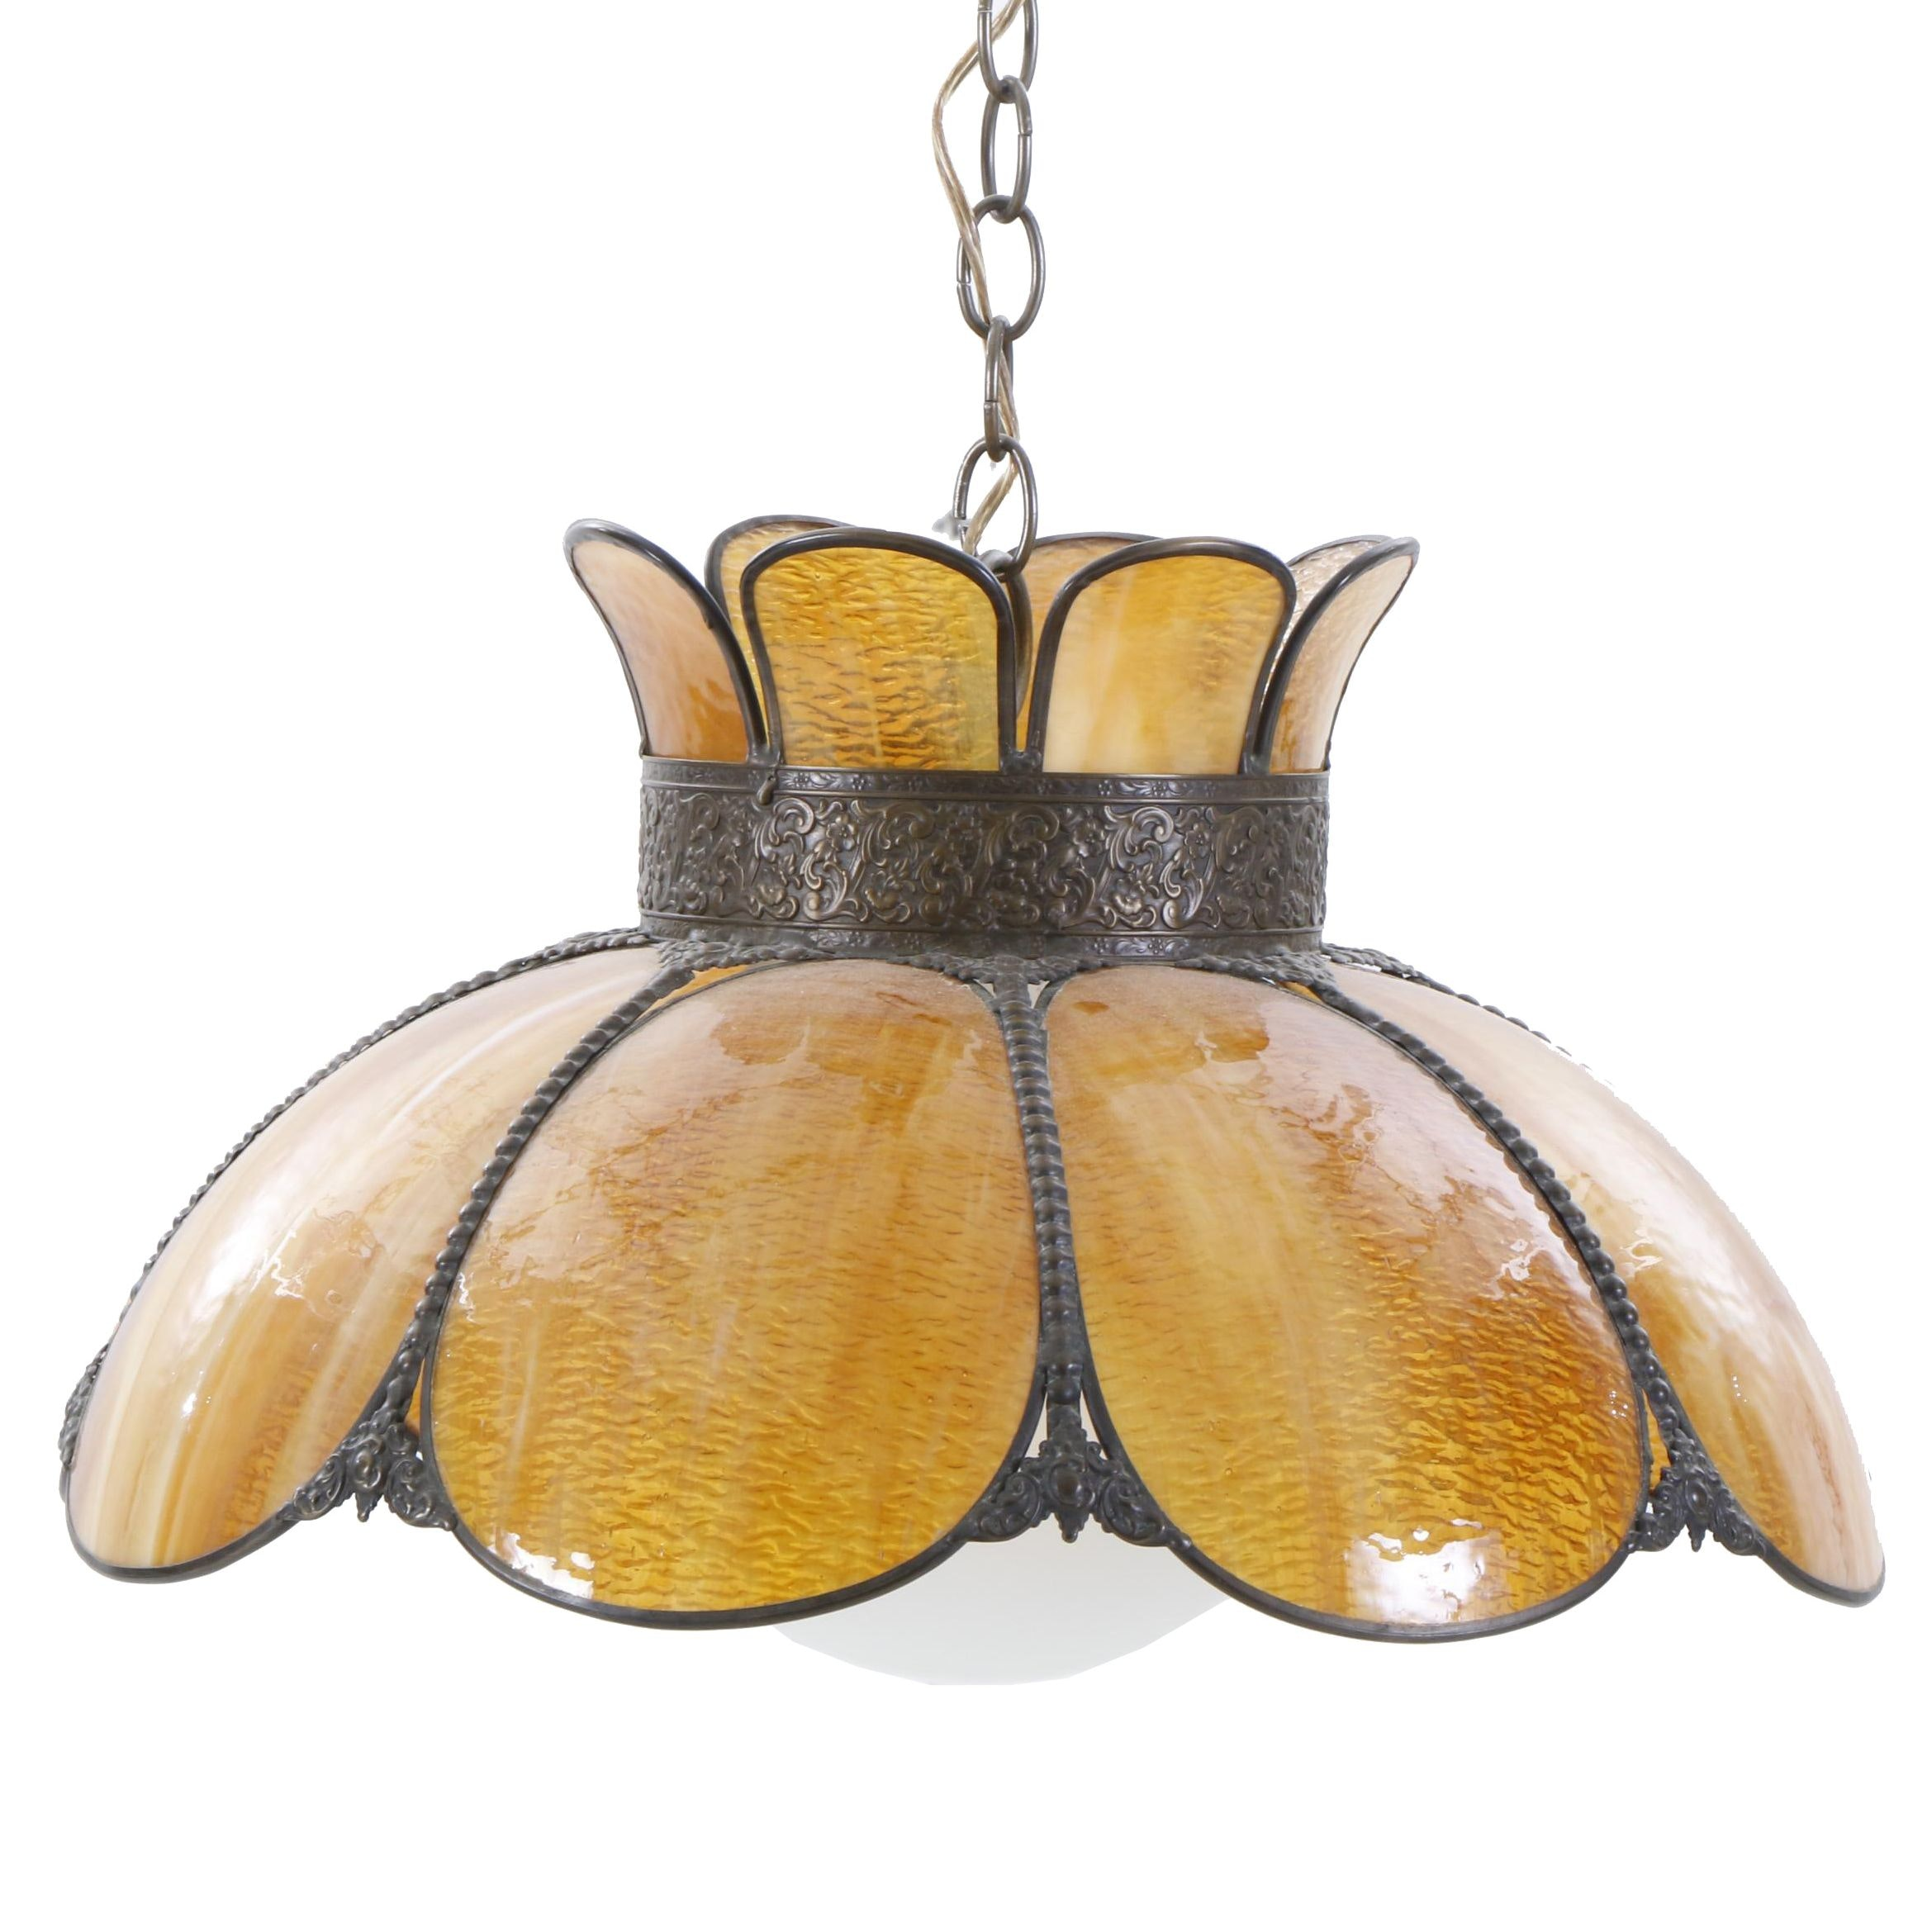 Amber Stained Slag Glass Pendant Lamp, Mid to Late 20th Century